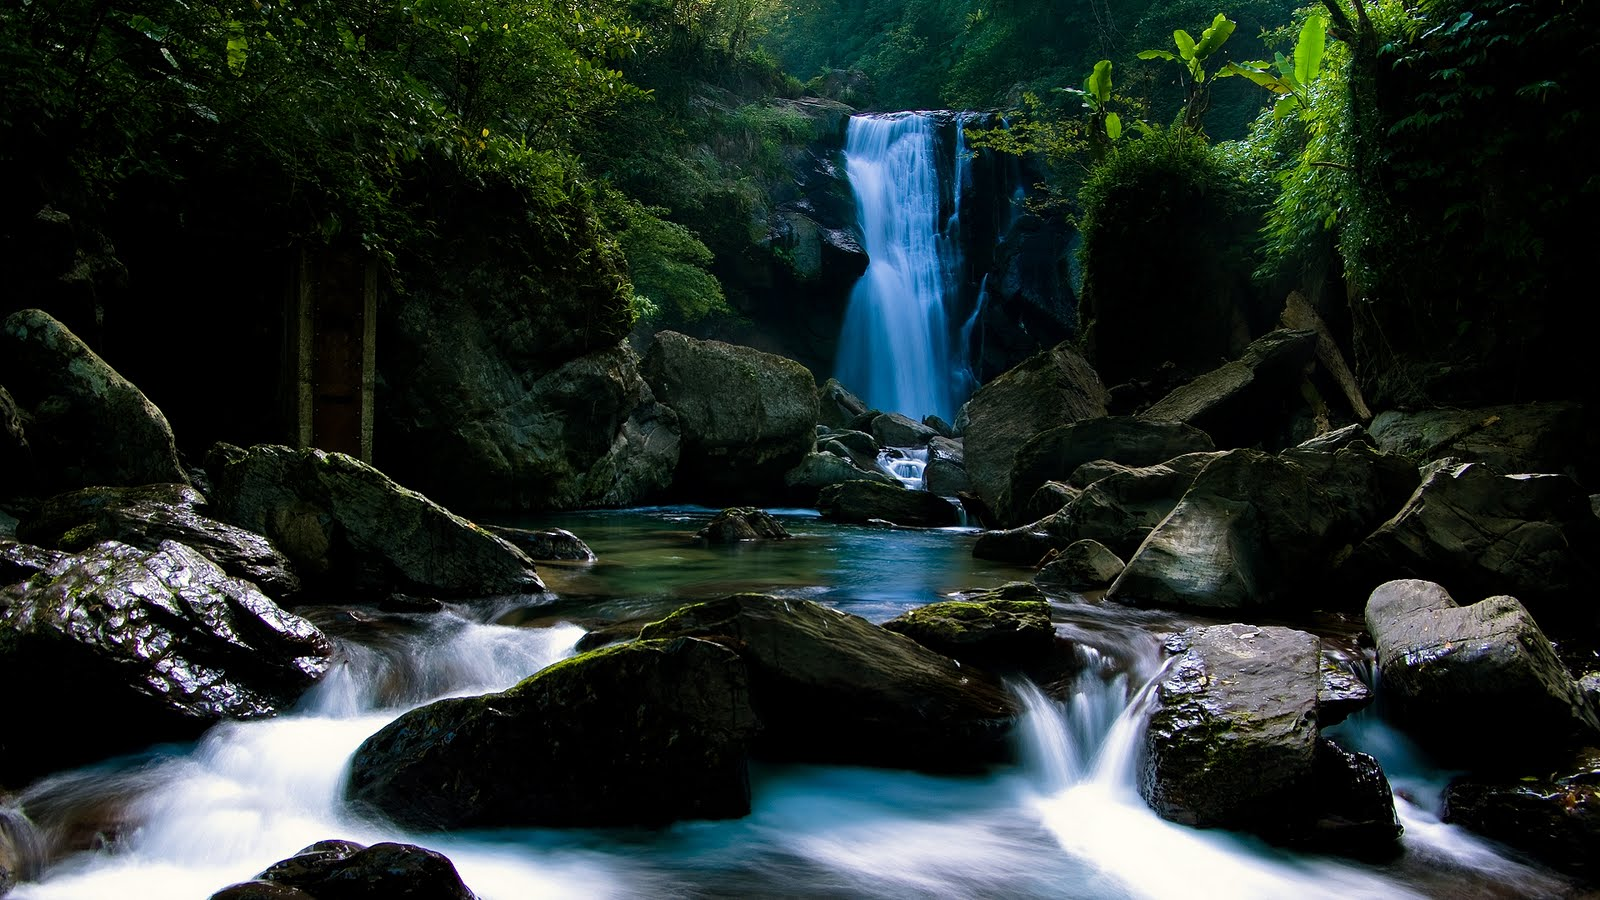 nature wallpaper 5 pt2 - photo #28